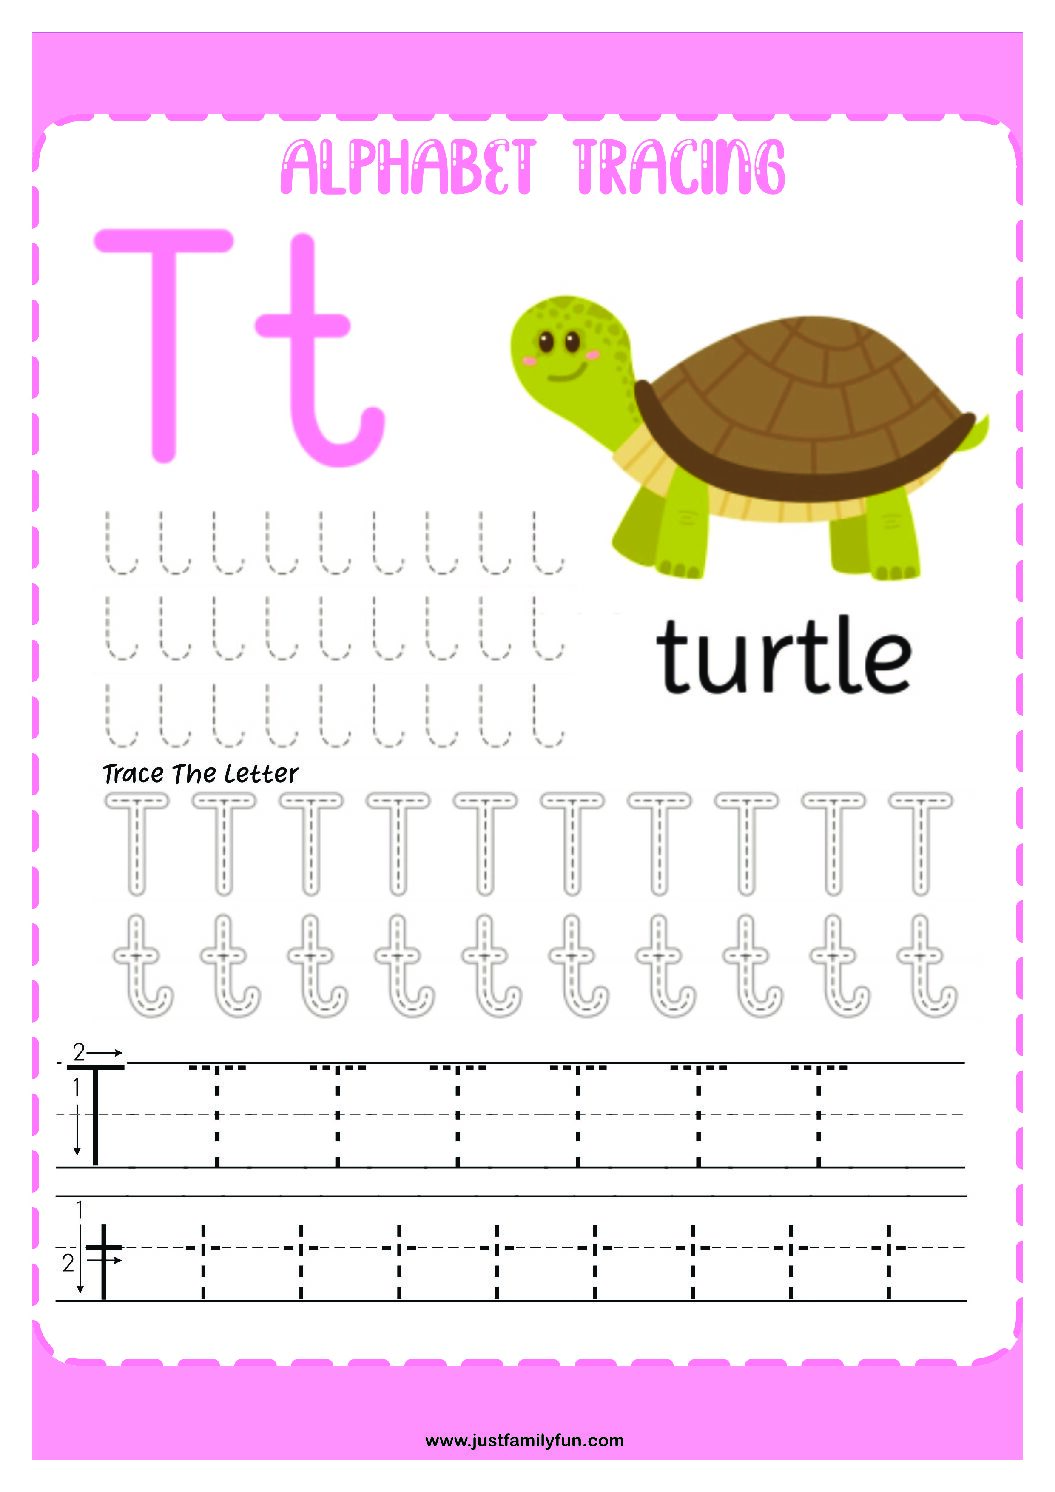 Alphabets_20-pdf Free Printable Trace The Alphabet Worksheets for Kids.